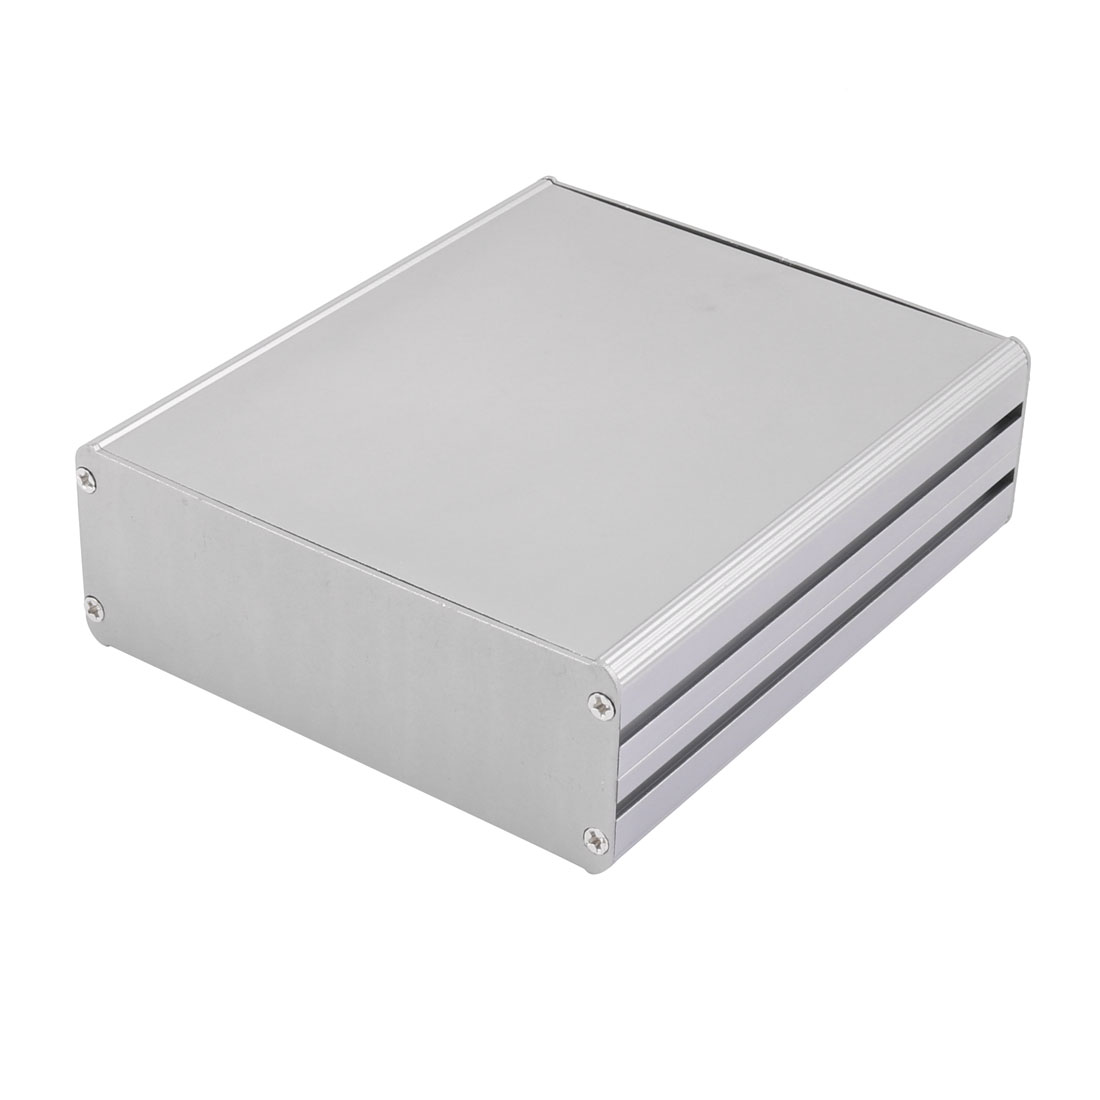 143 x 122 x 43mm Multi-purpose Electronic Extruded Aluminum Enclosure Case Gray